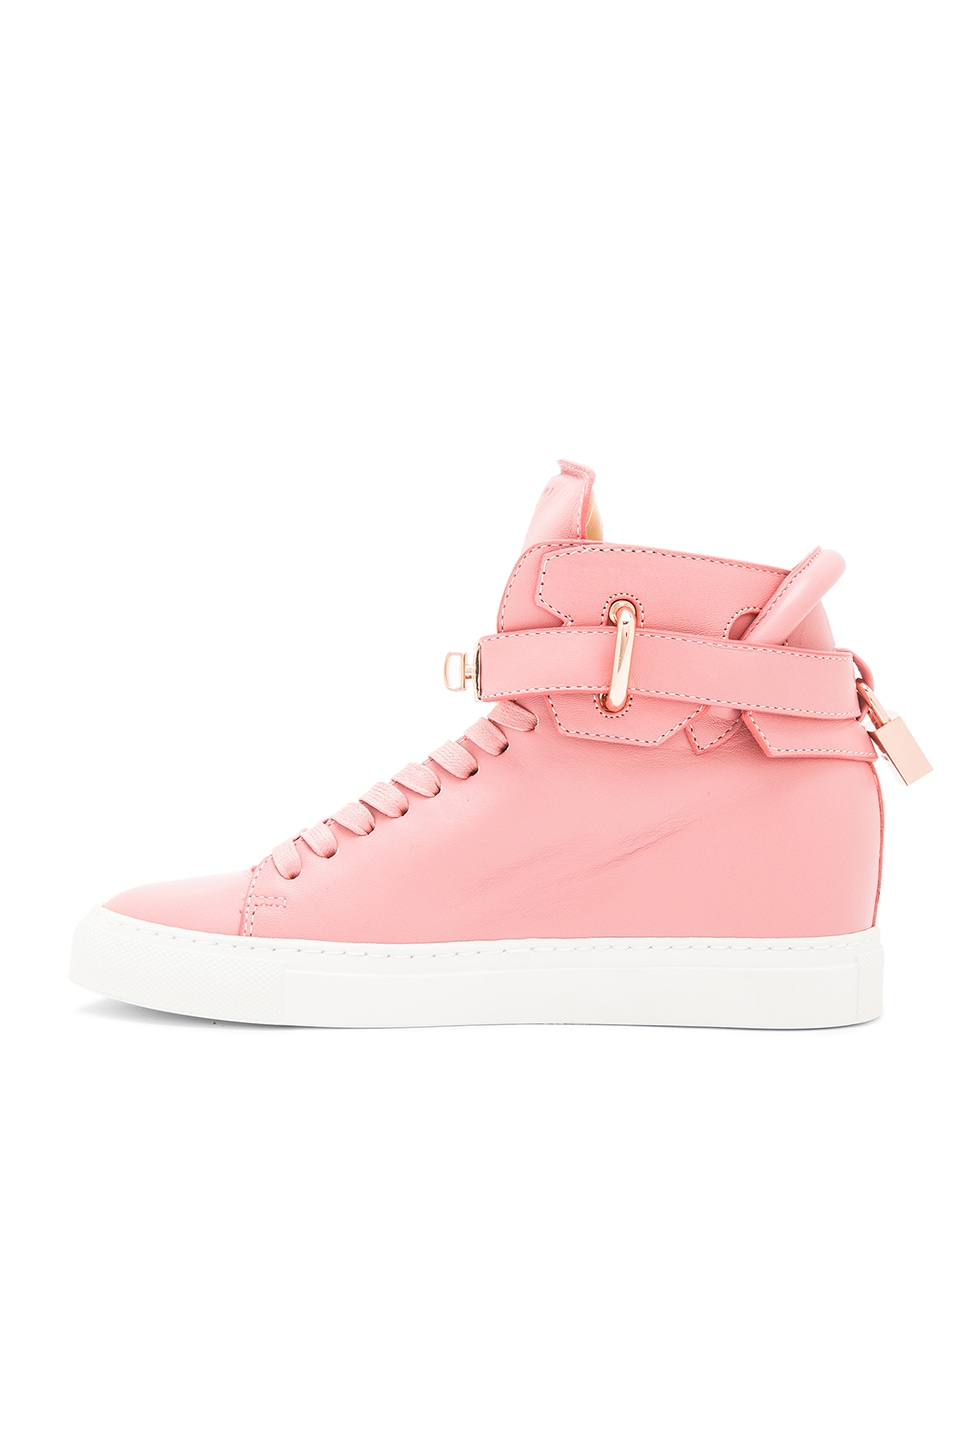 Image 5 of Buscemi 100MM Alta High Top Leather Sneakers in Coral